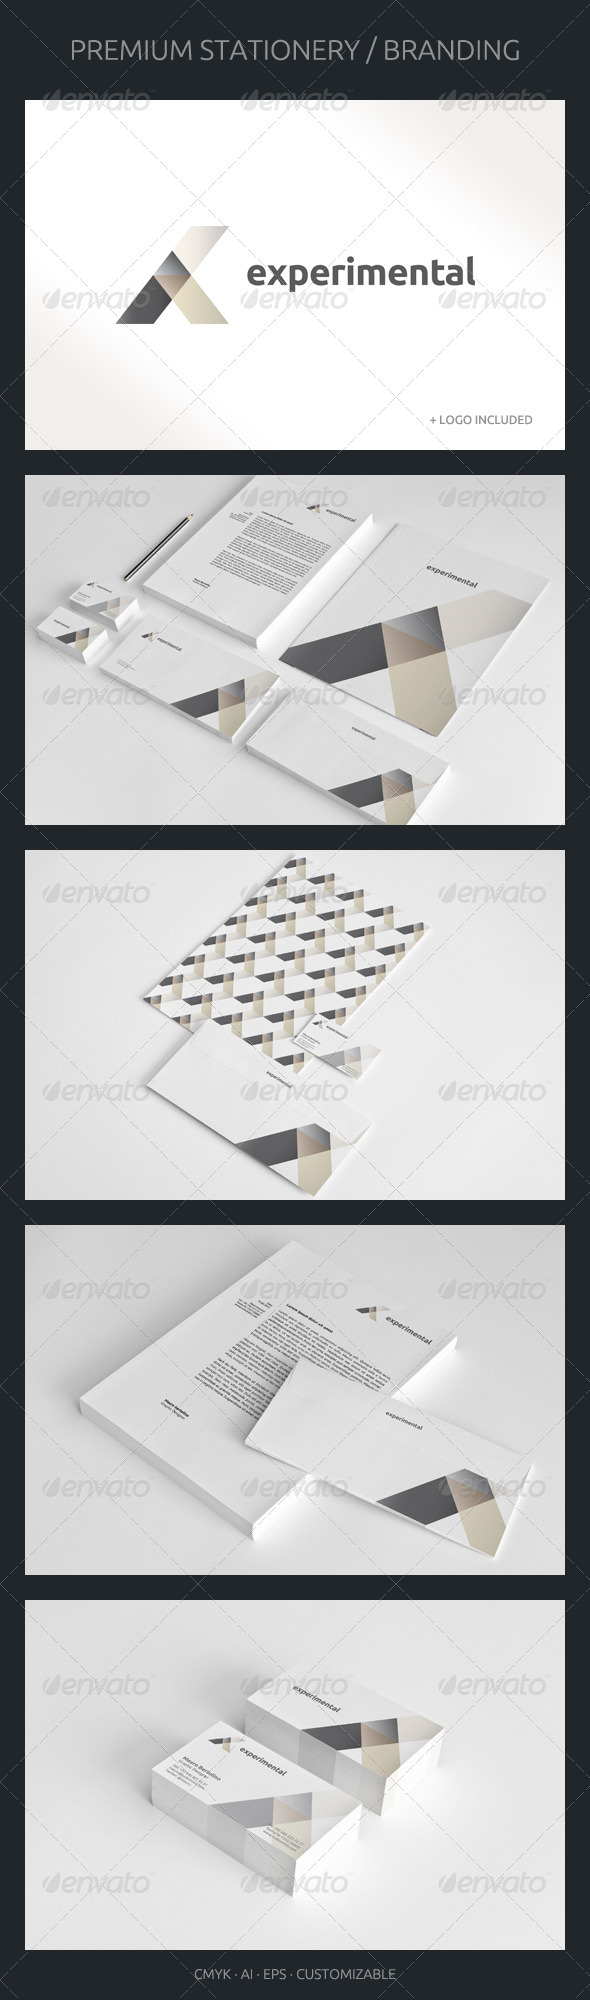 Experimental - Corporate Identity - Stationery Print Templates